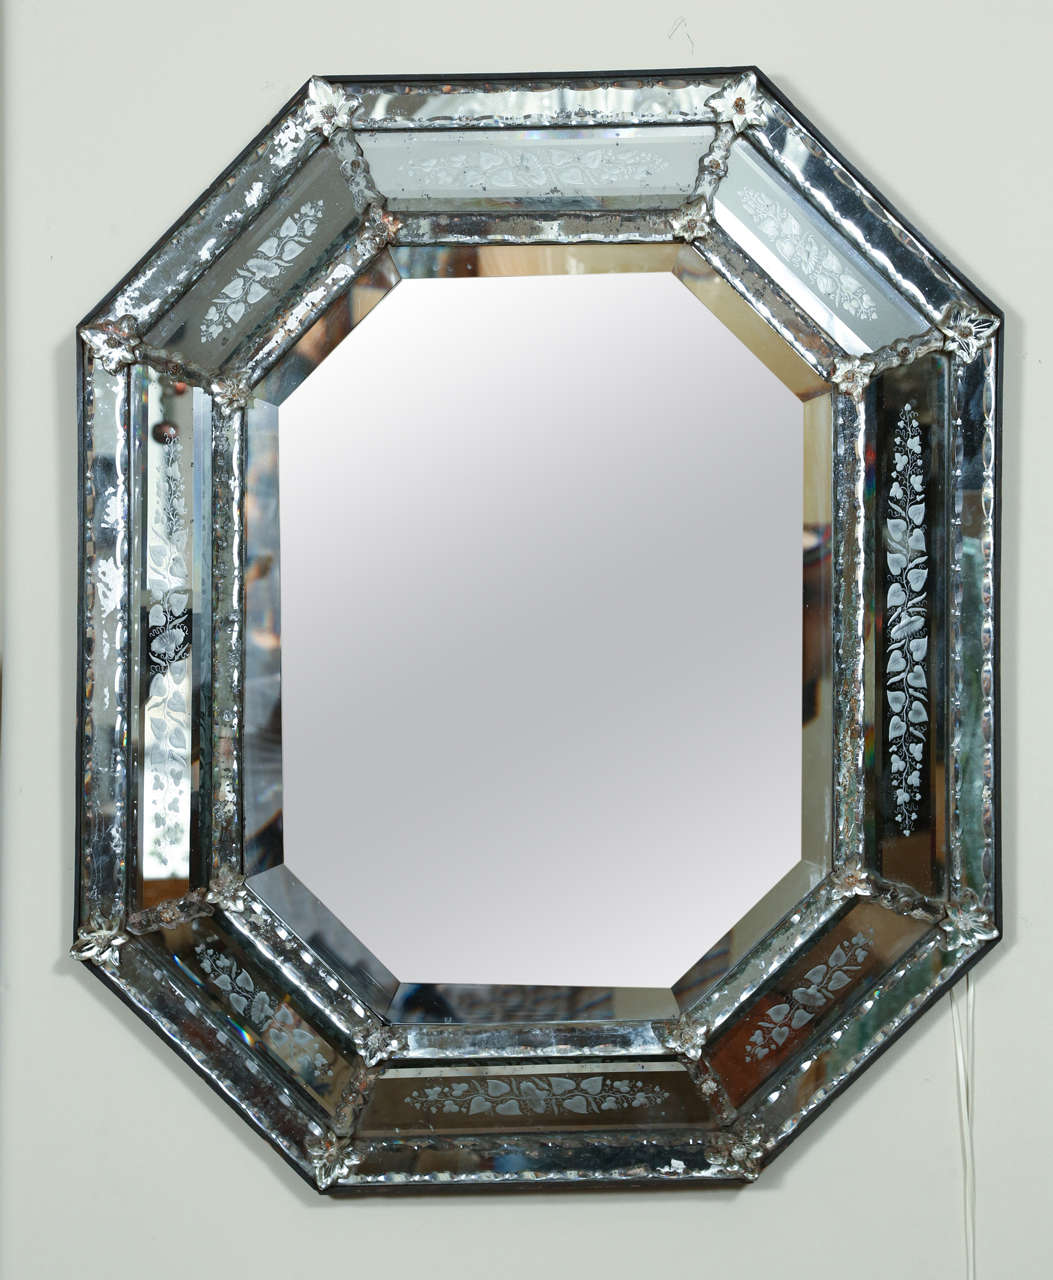 Venetian Mirrored Glass Picture Frames - Glass Designs